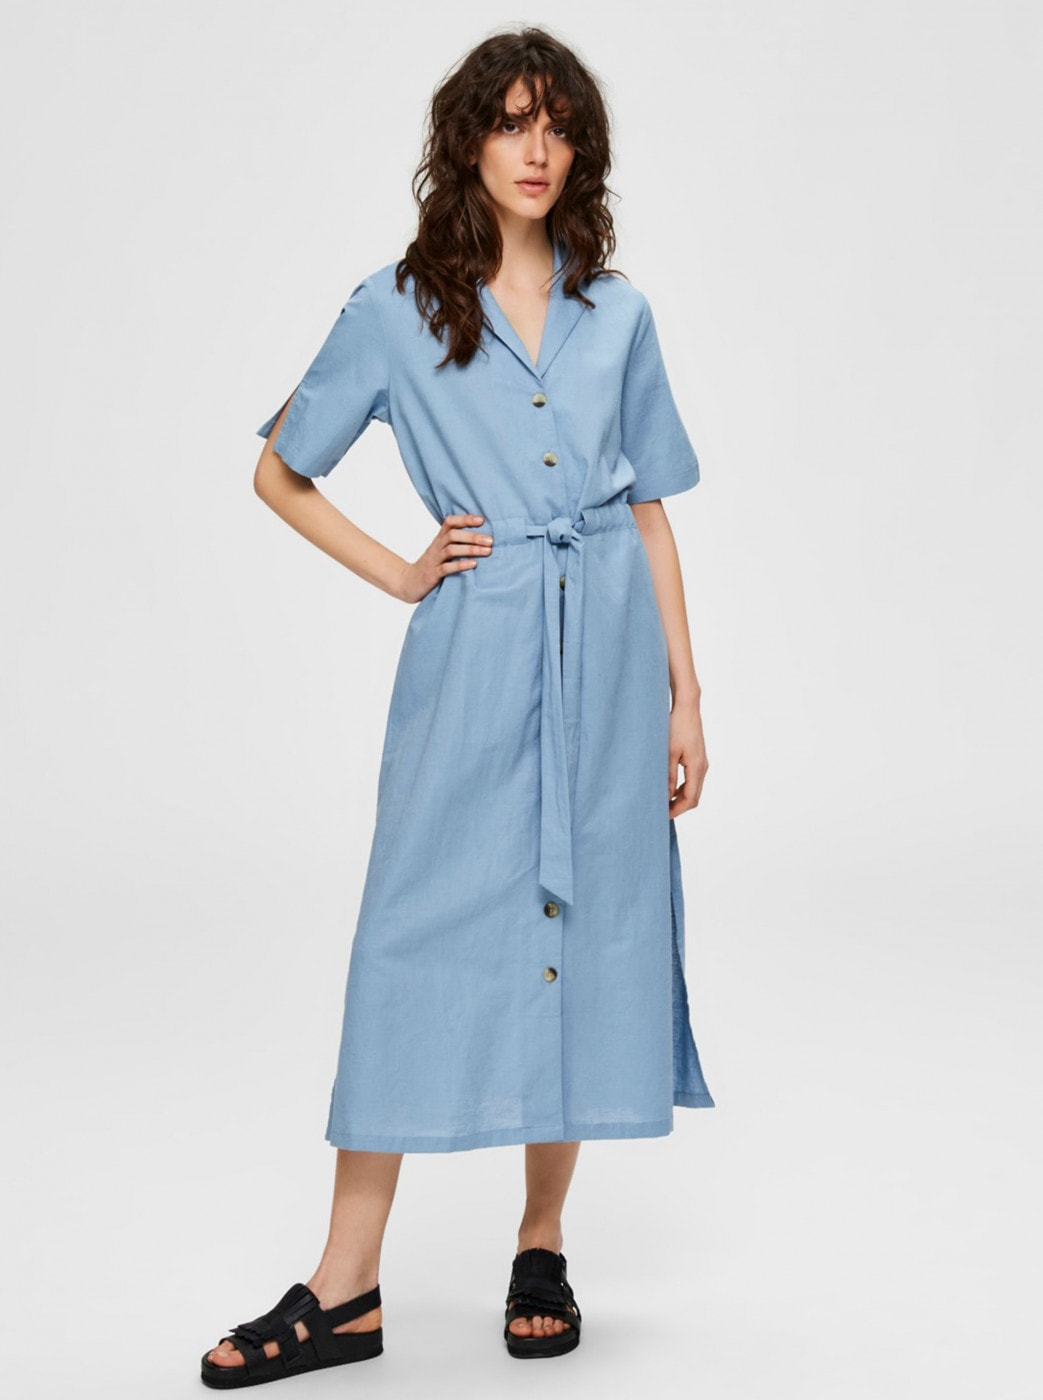 Blue Shirt Linen Midid44 Selected Femme Cally